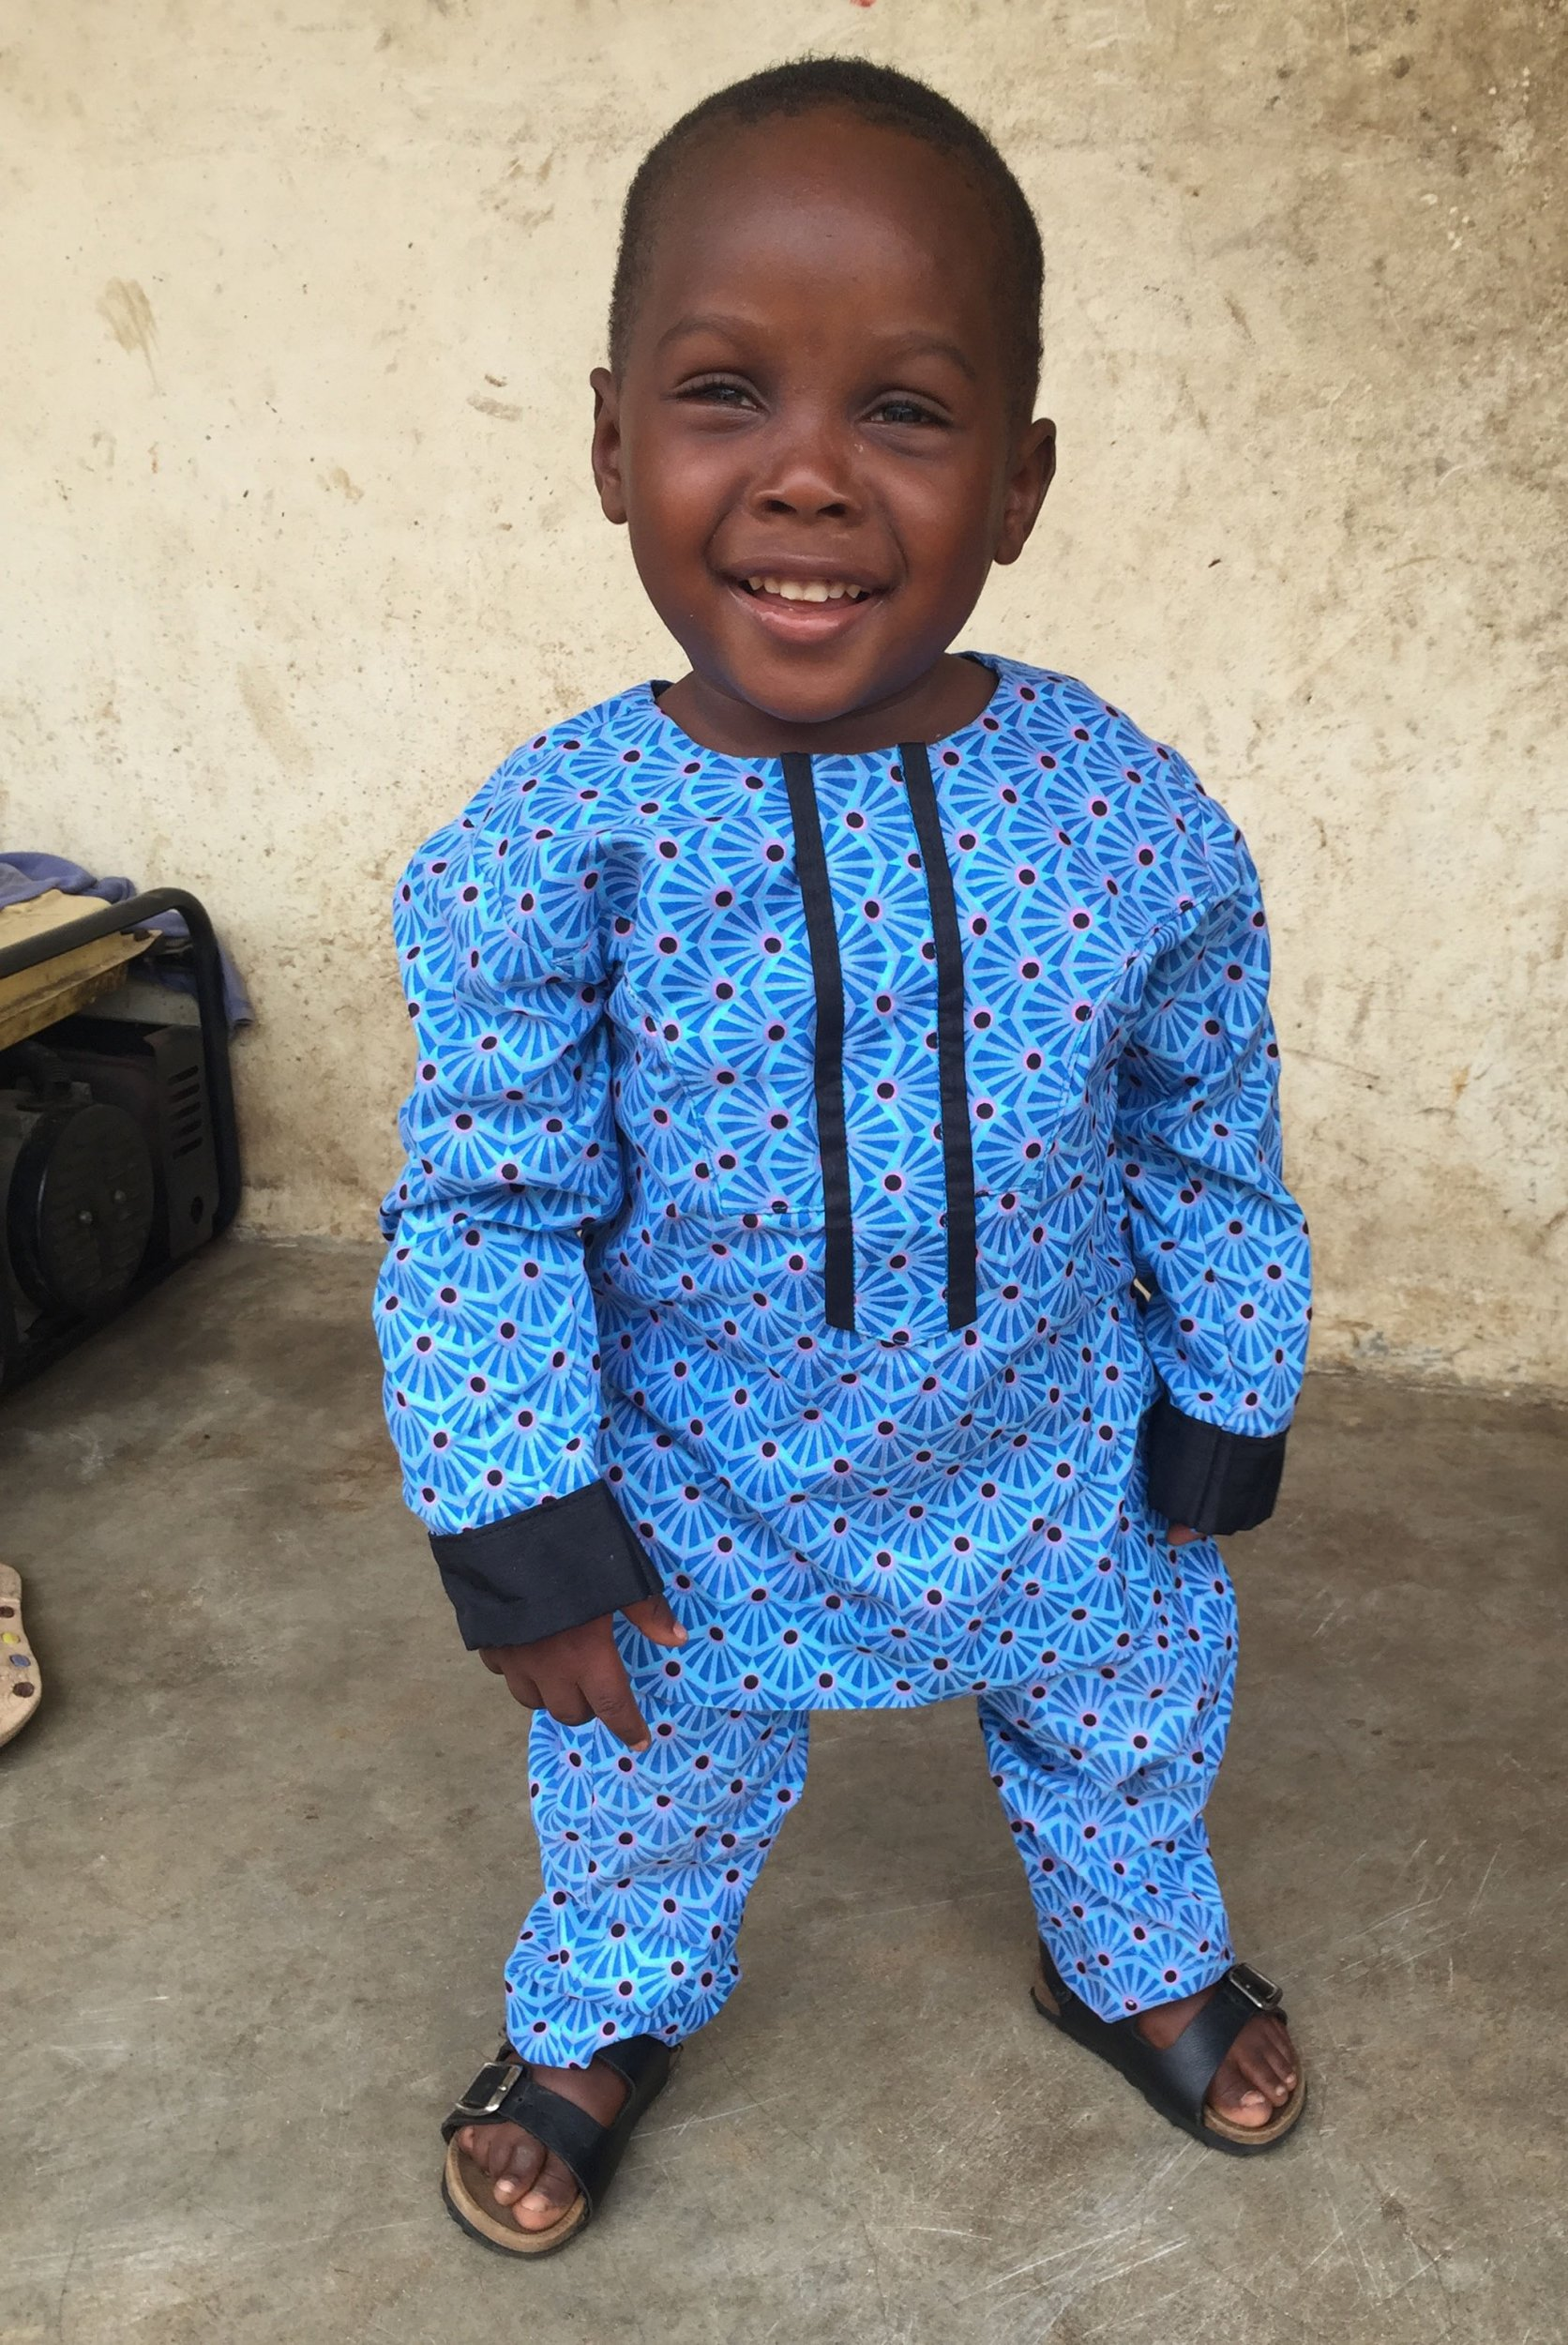 """""""Witch boy"""" first day of school Incredible recovery of the Nigerian 'witch child' who was left for dead by his parents: Care worker reveals pictures of fighting fit two-year-old after heart-breaking image shocked the world"""